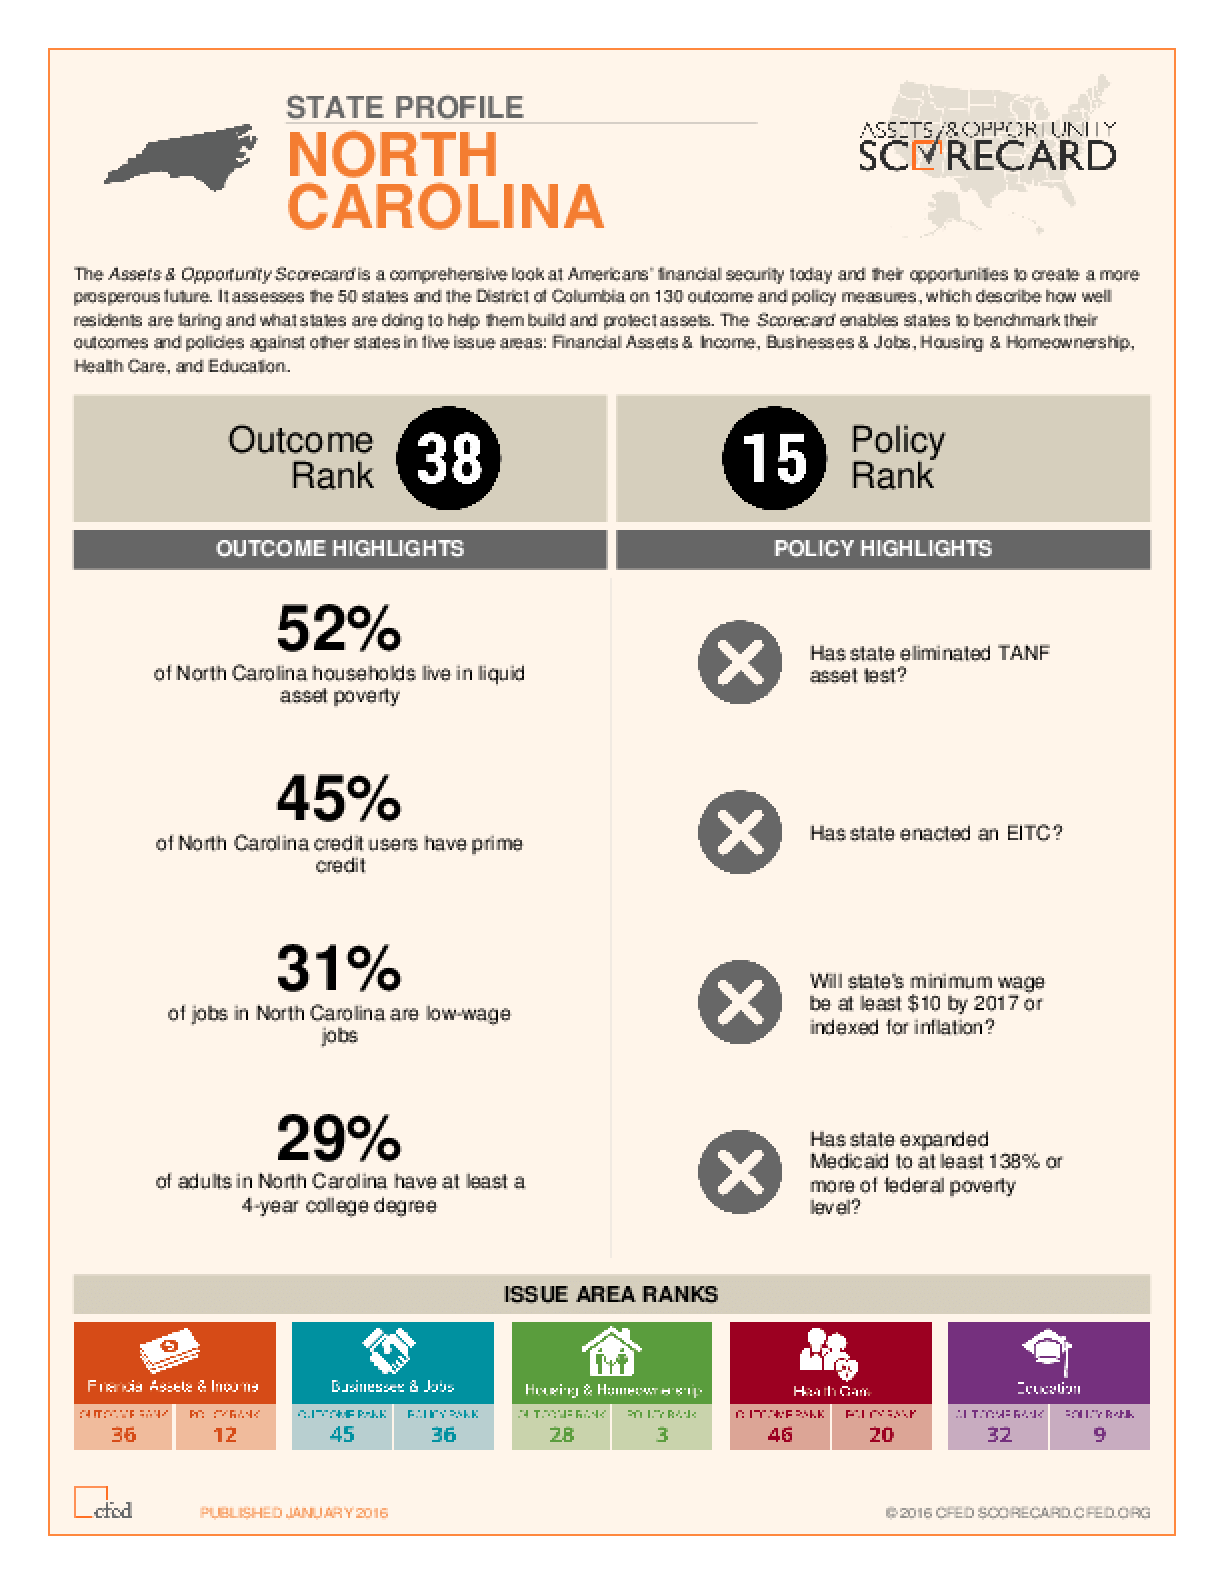 State Profile North Carolina: Assets and Opportunity Scorecard